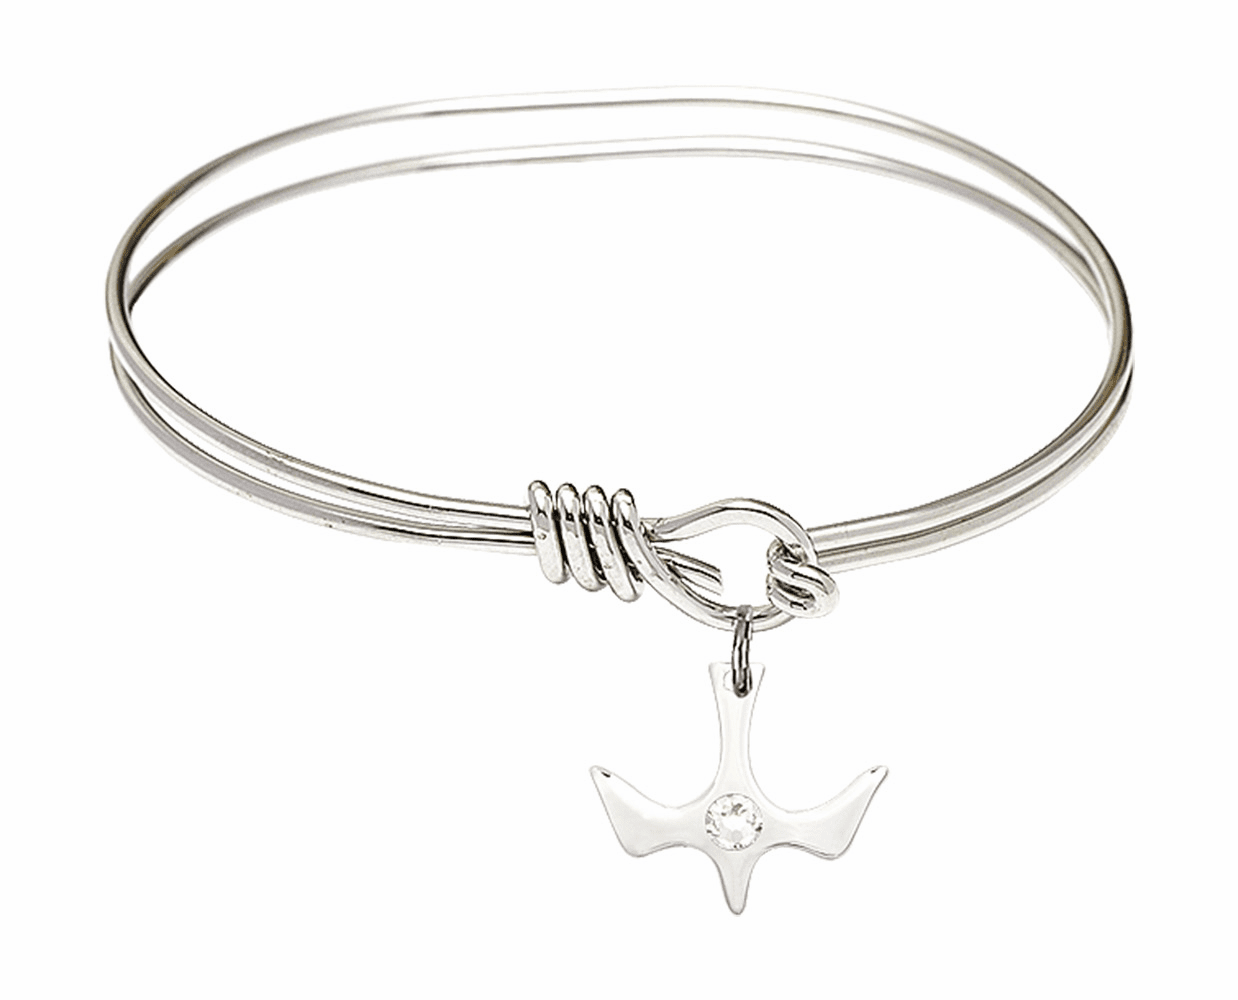 Textured Bangle Bracelet w/Crystal Holy Spirit Charm by Bliss Mfg